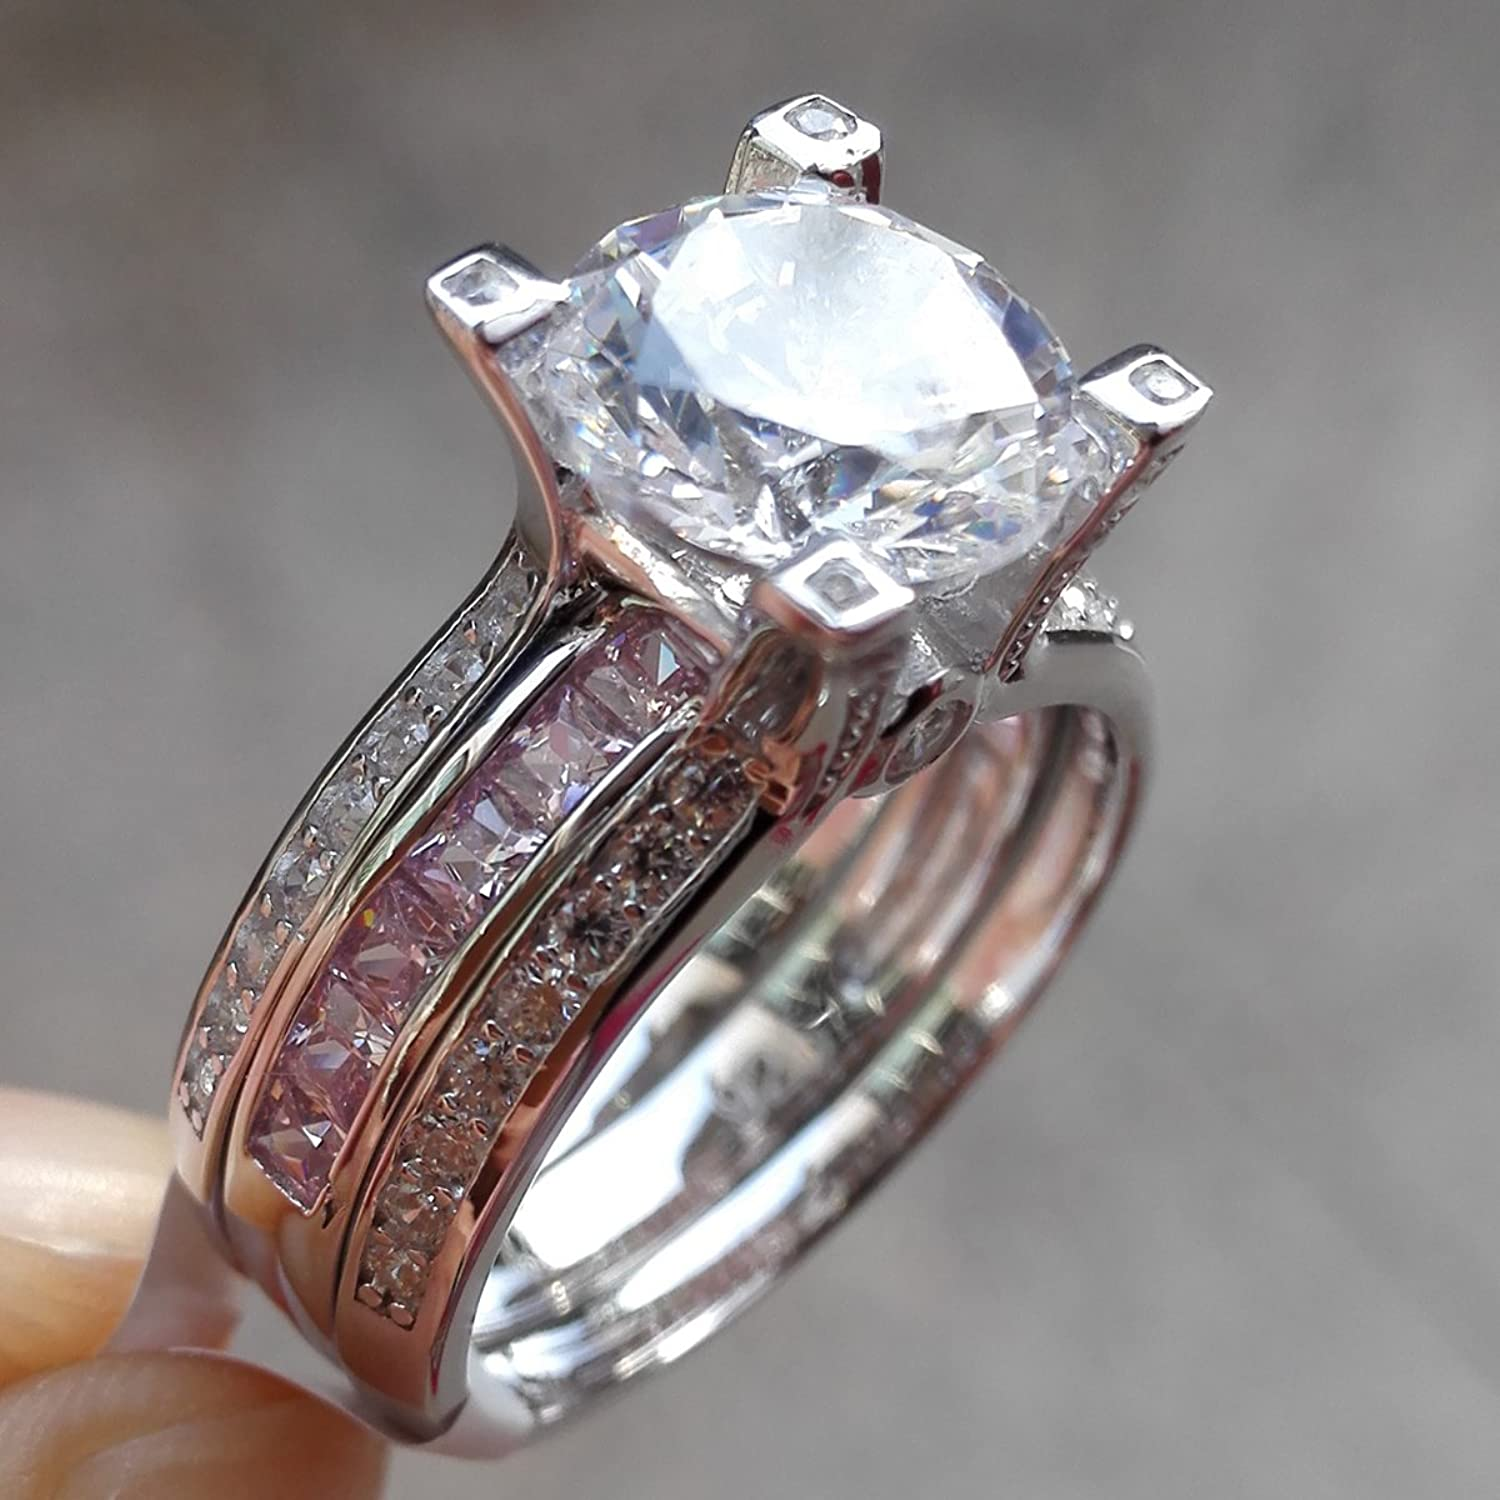 idea pink diamond rings of by inspired the engagement wedding star ring luxury elegant inspirational spectacular